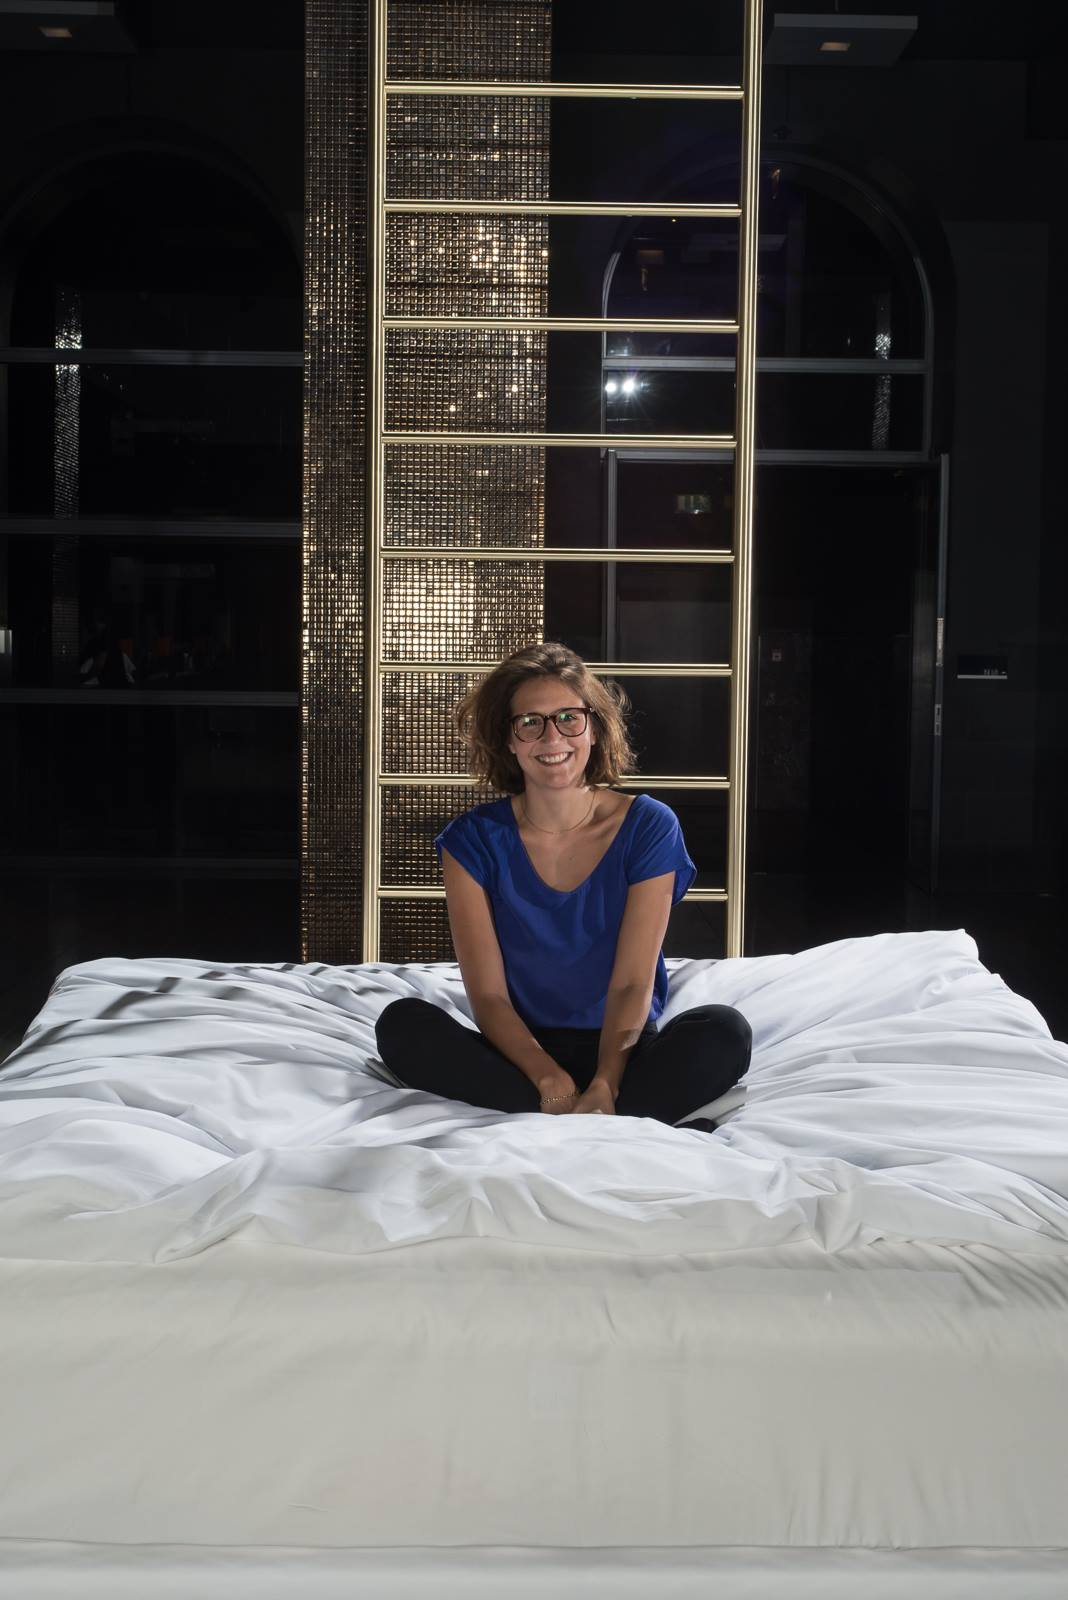 French designer Clementine Pautrot winner MyBed design competition